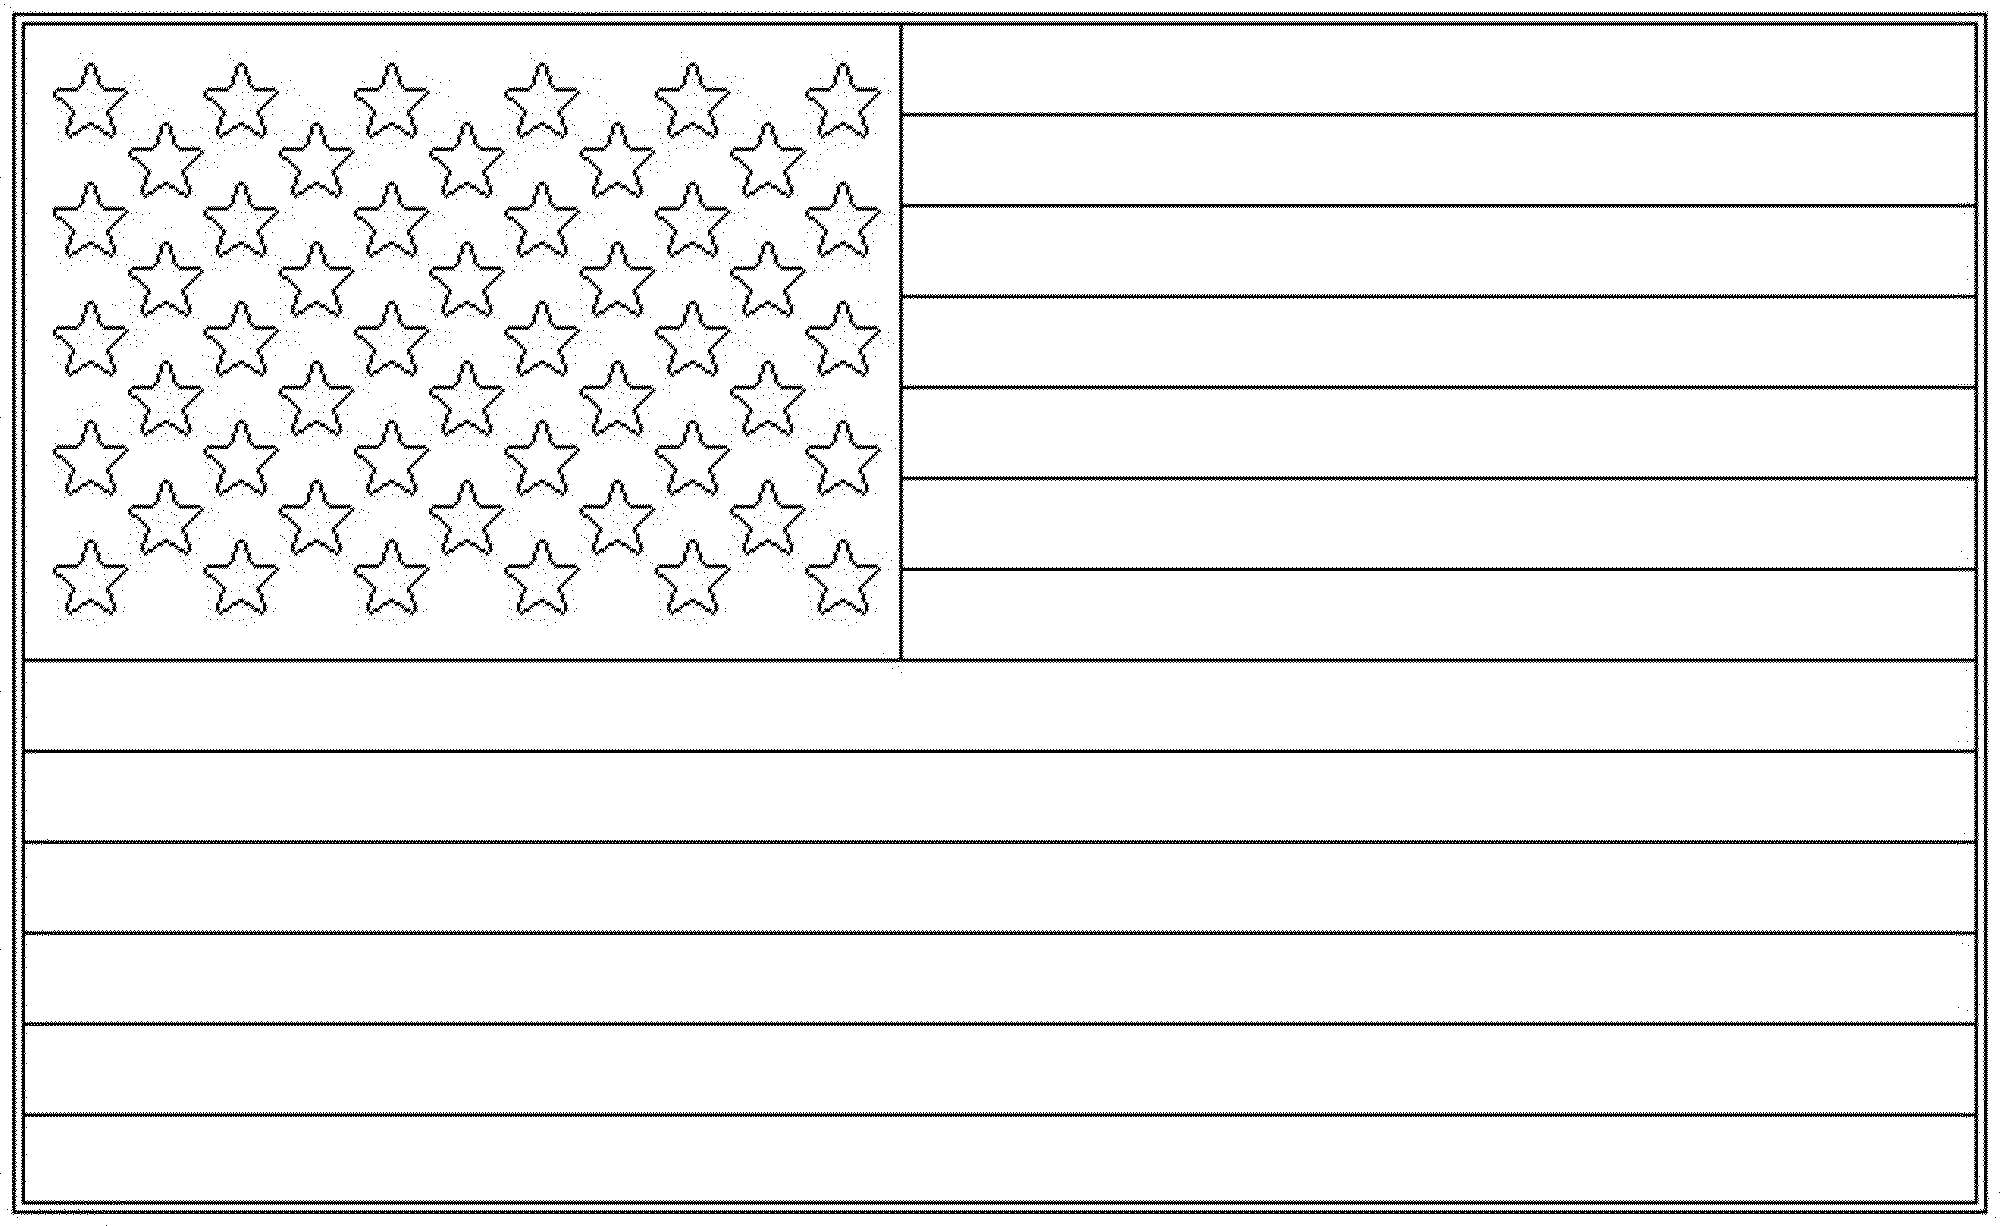 free printable american flag coloring sheets american flag coloring page for the love of the country free sheets printable coloring american flag